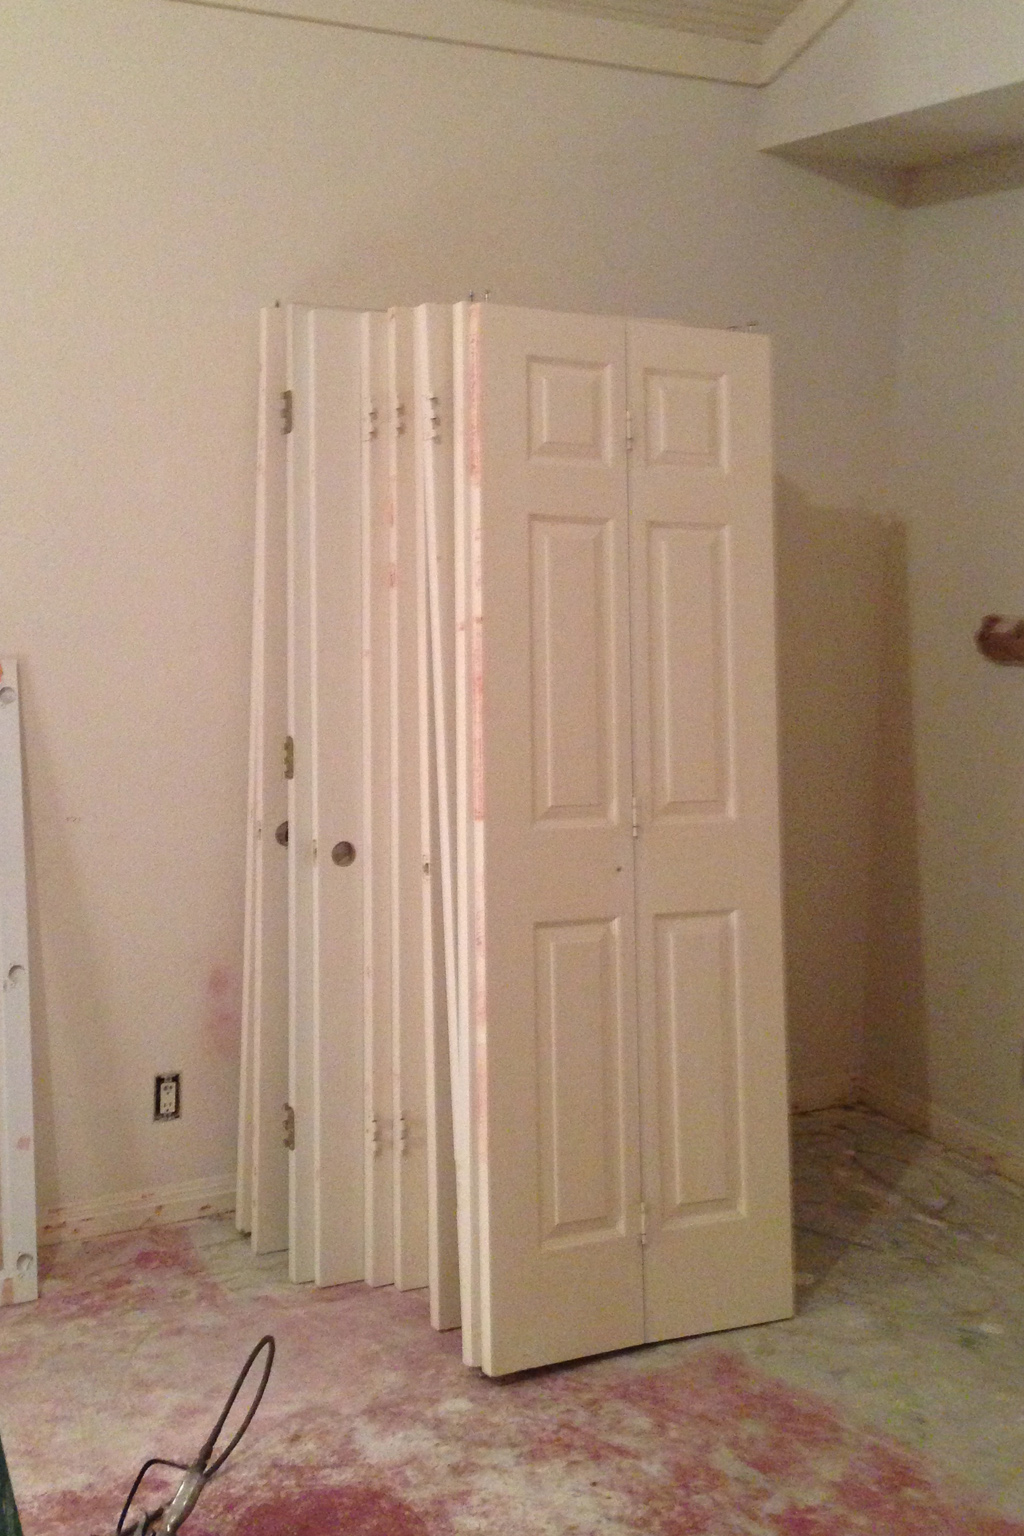 Just a few of the interior doors that have all been sanded, cleaned and are ready to be painted.